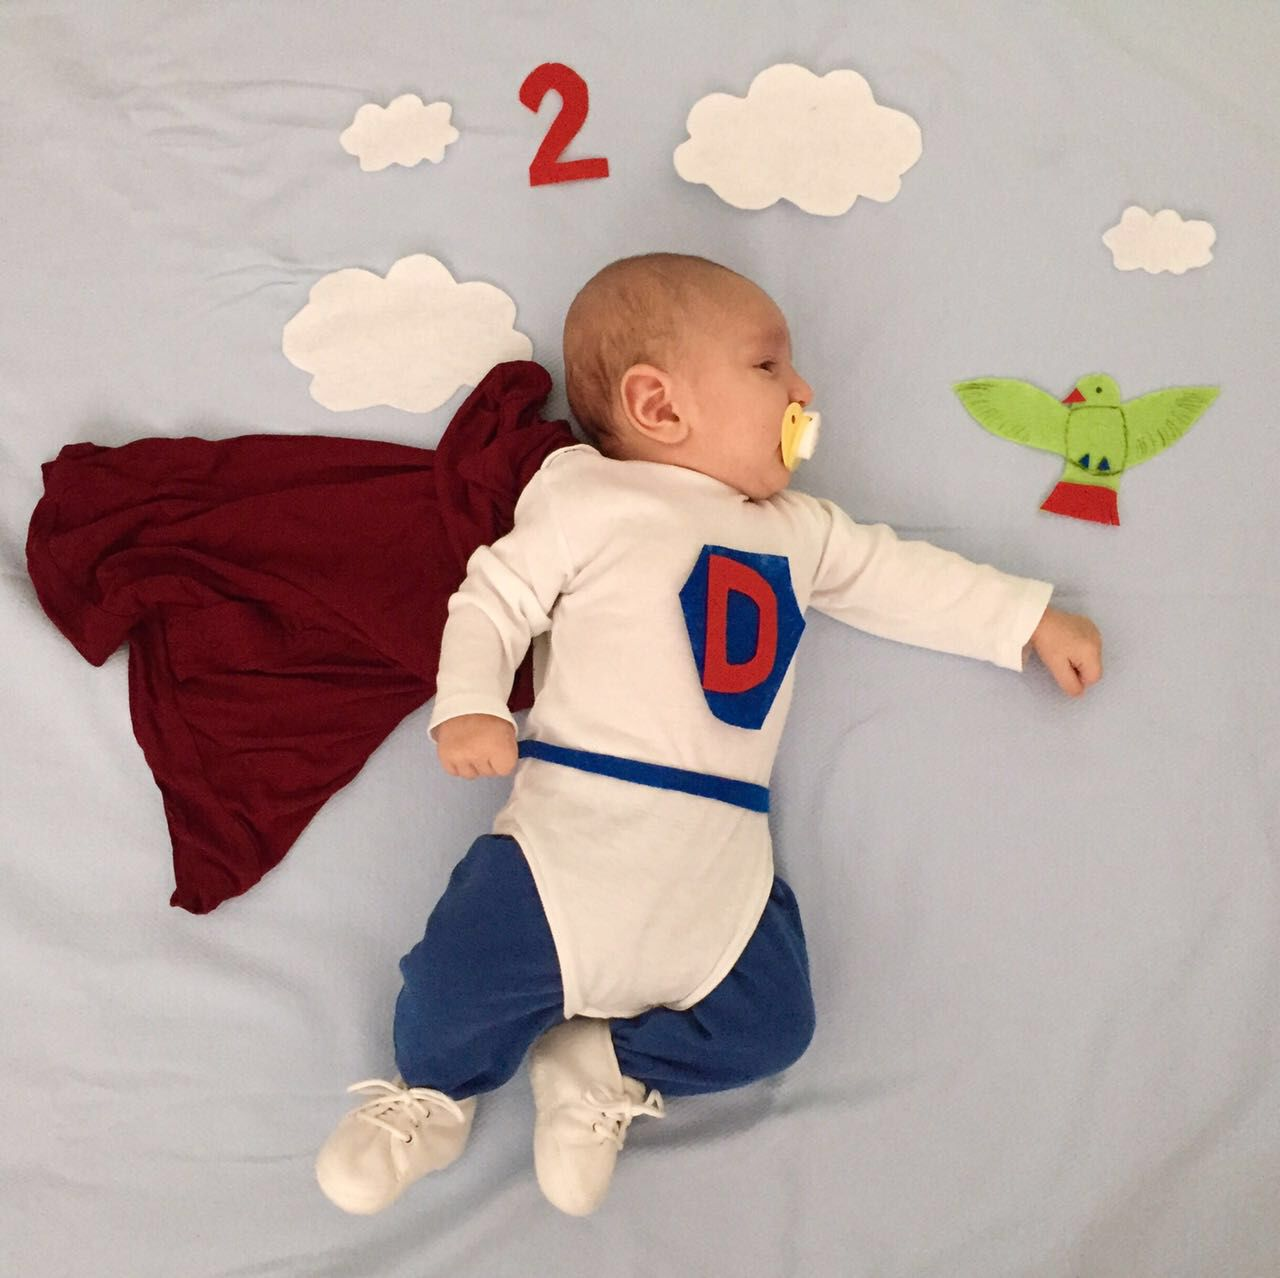 My Baby Boy Is 2 Months Old Baby Photography Funny Baby Cool Baby Stuff Baby Boy Pictures Baby Pictures